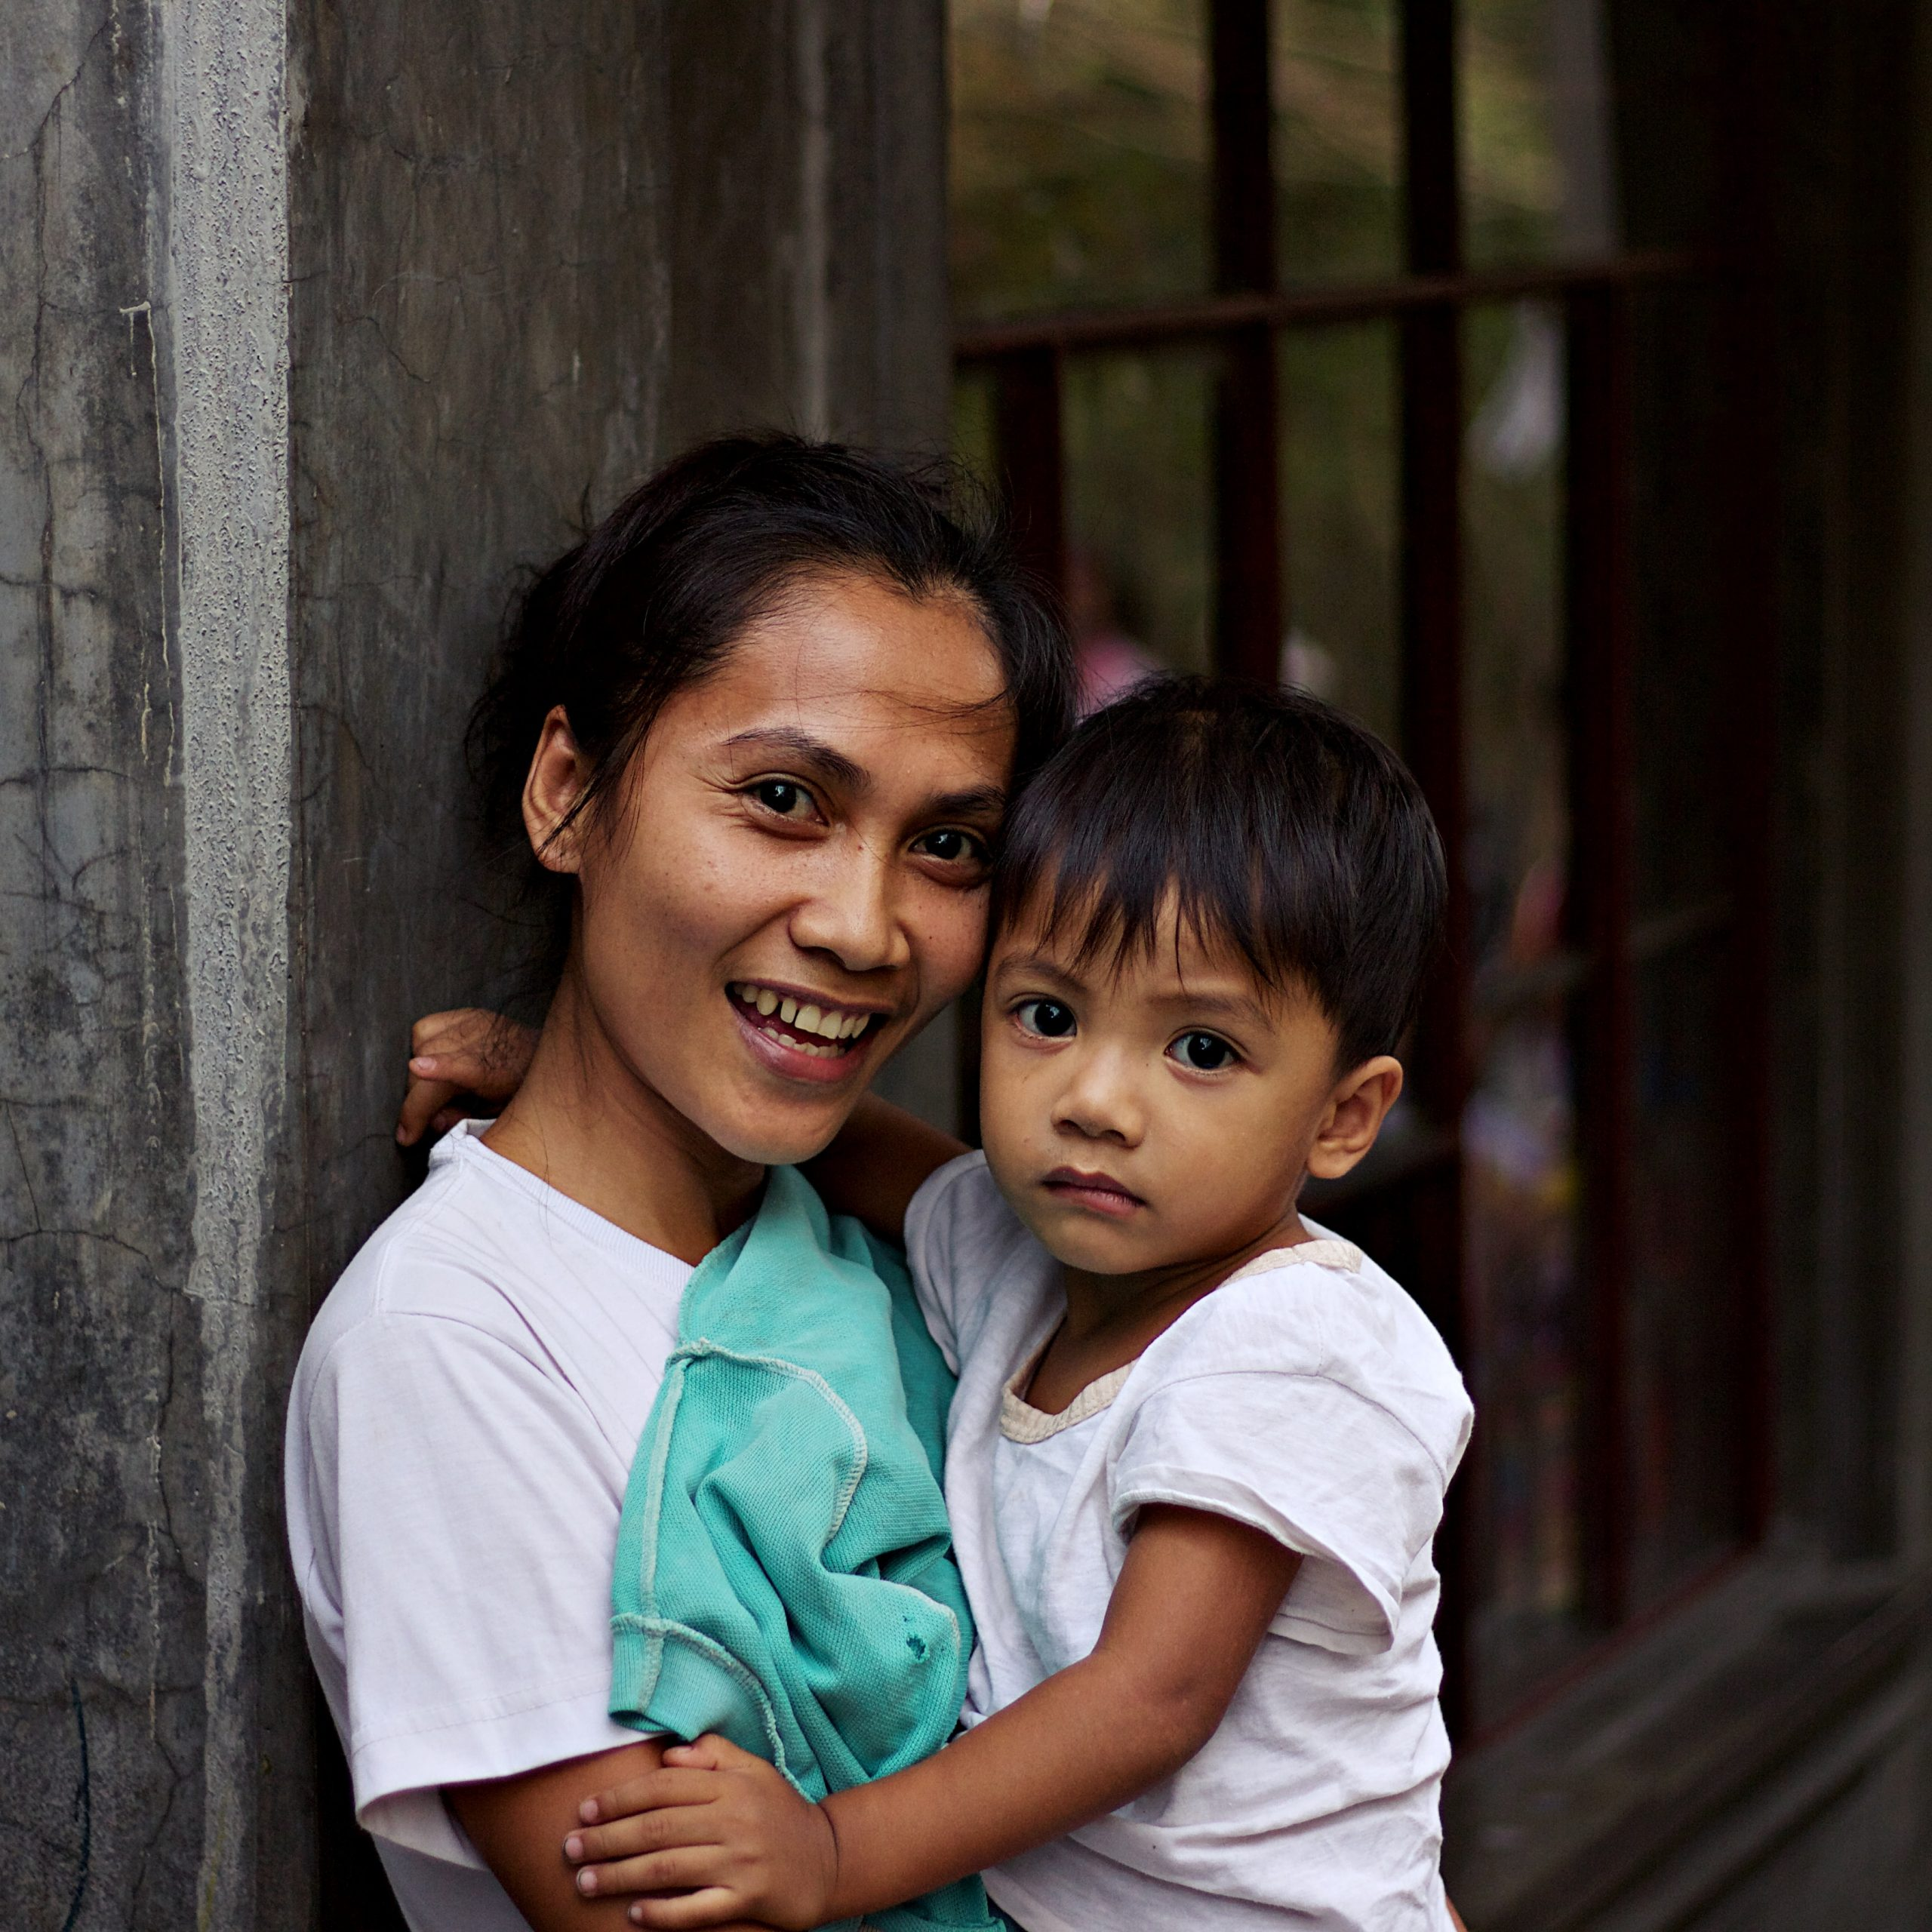 Representative image of young, cheerful, southeast Asian female survivor holding her 3 year old son.